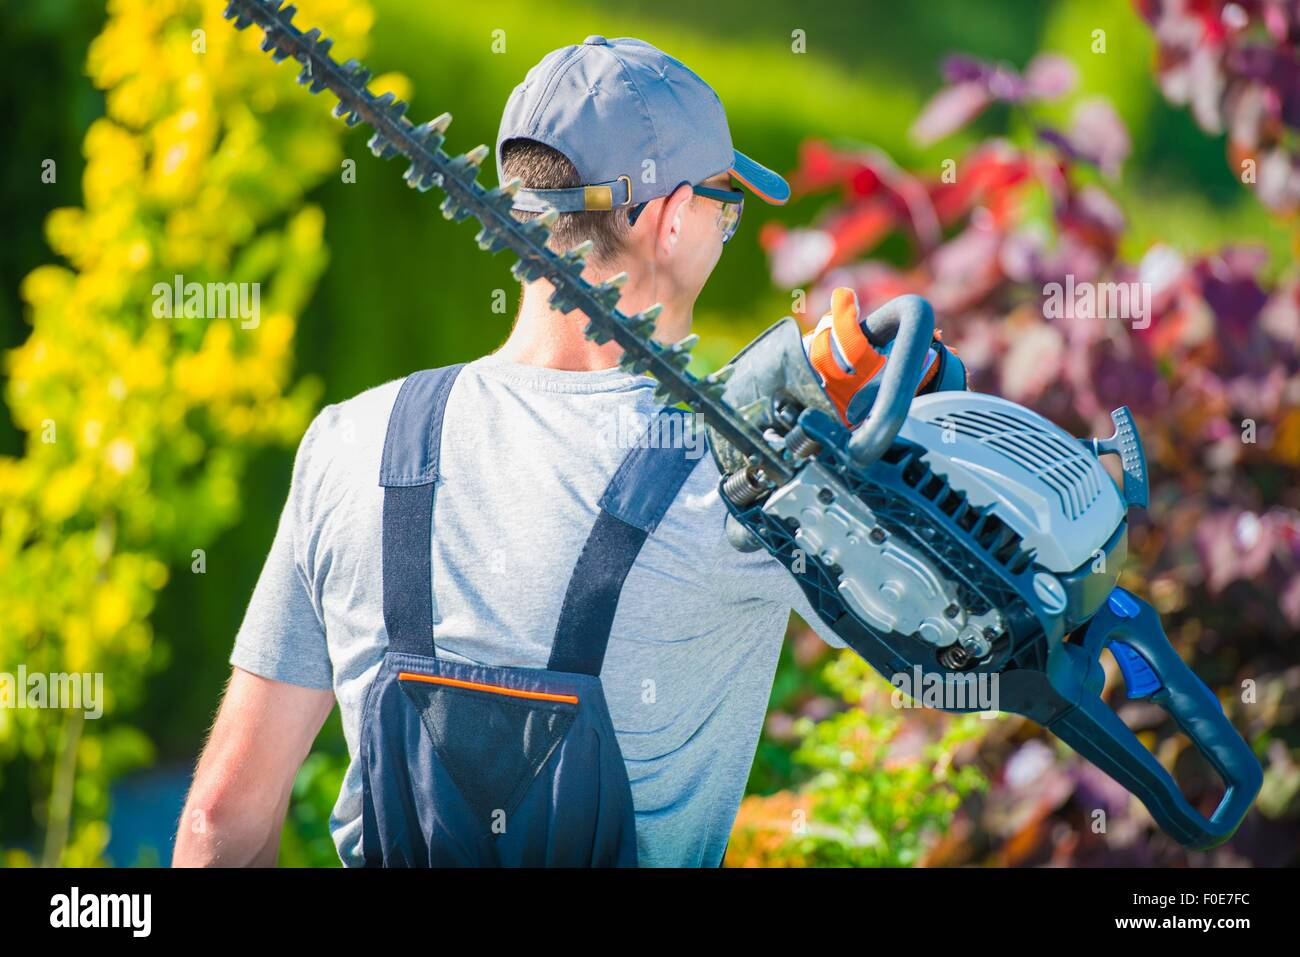 Professional Gardener with Large Gasoline Hedge Trimmer Going to Work. Summer Garden Care. - Stock Image